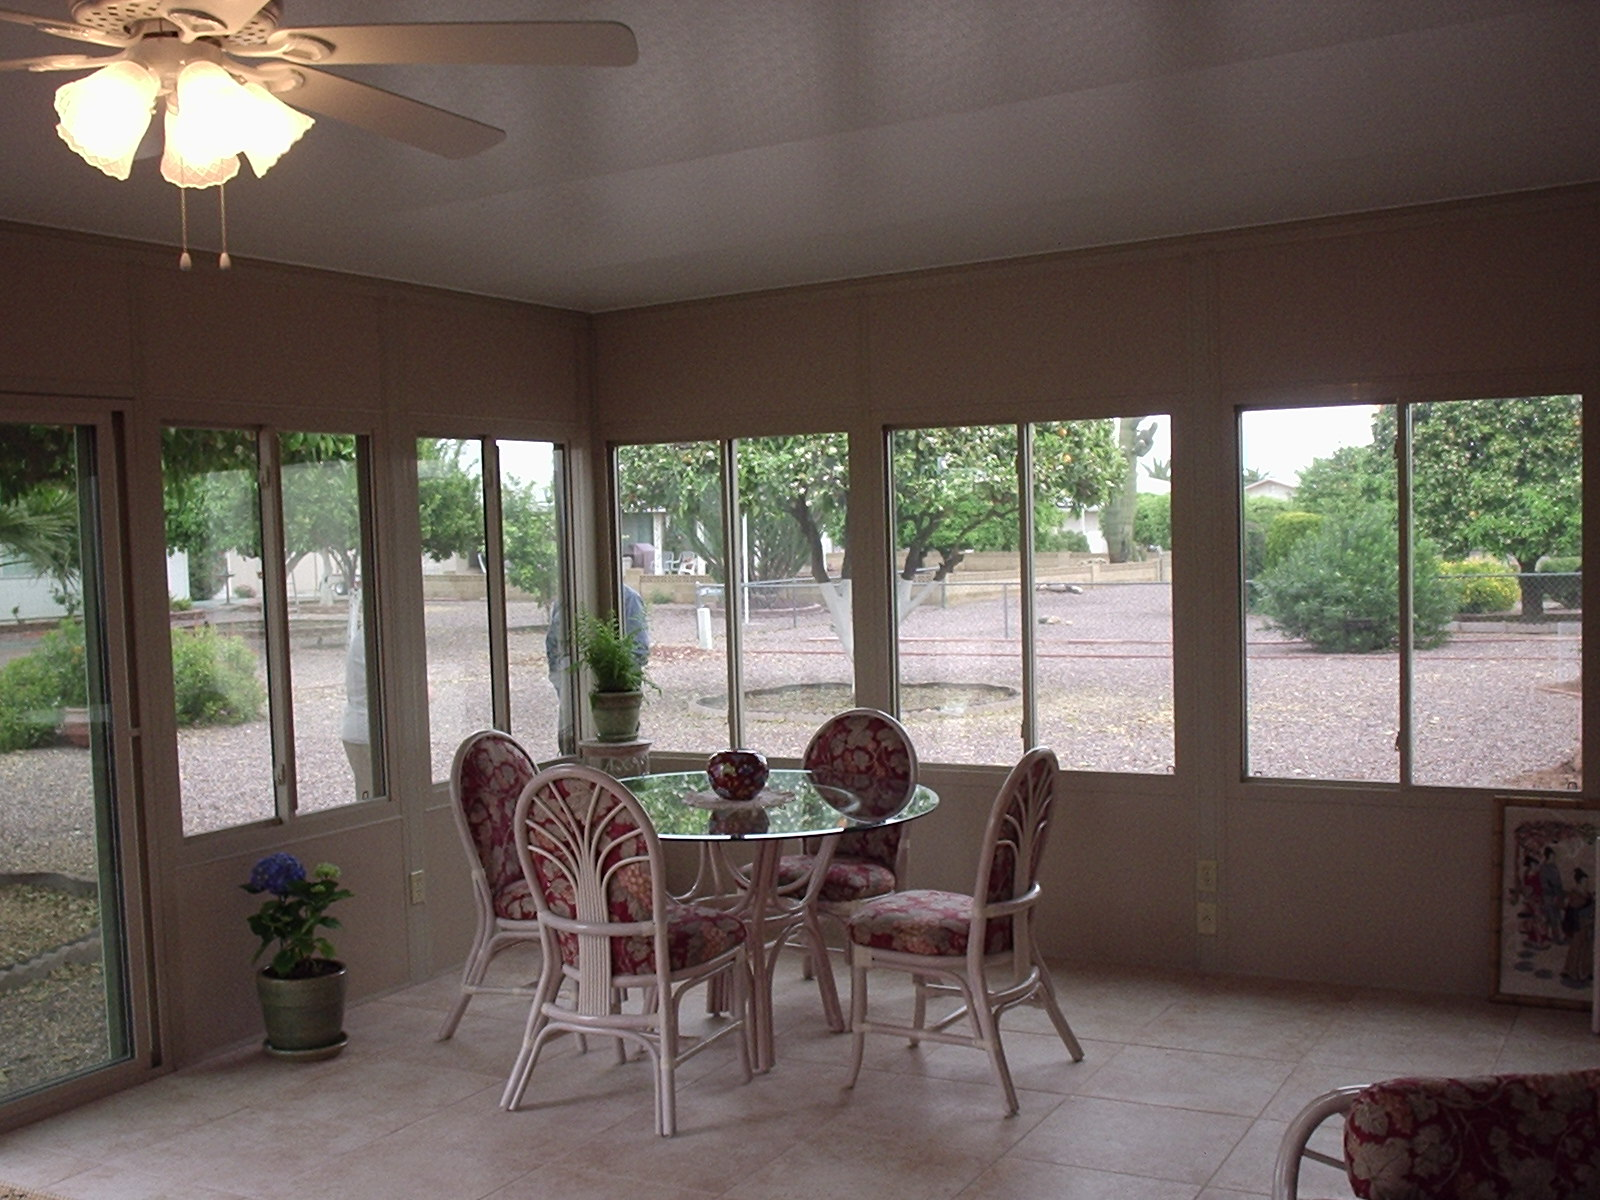 What Is An Arizona Room The Same As Florida Can A Sunroom Or Patio Enclosure Be Called You See There Are Many